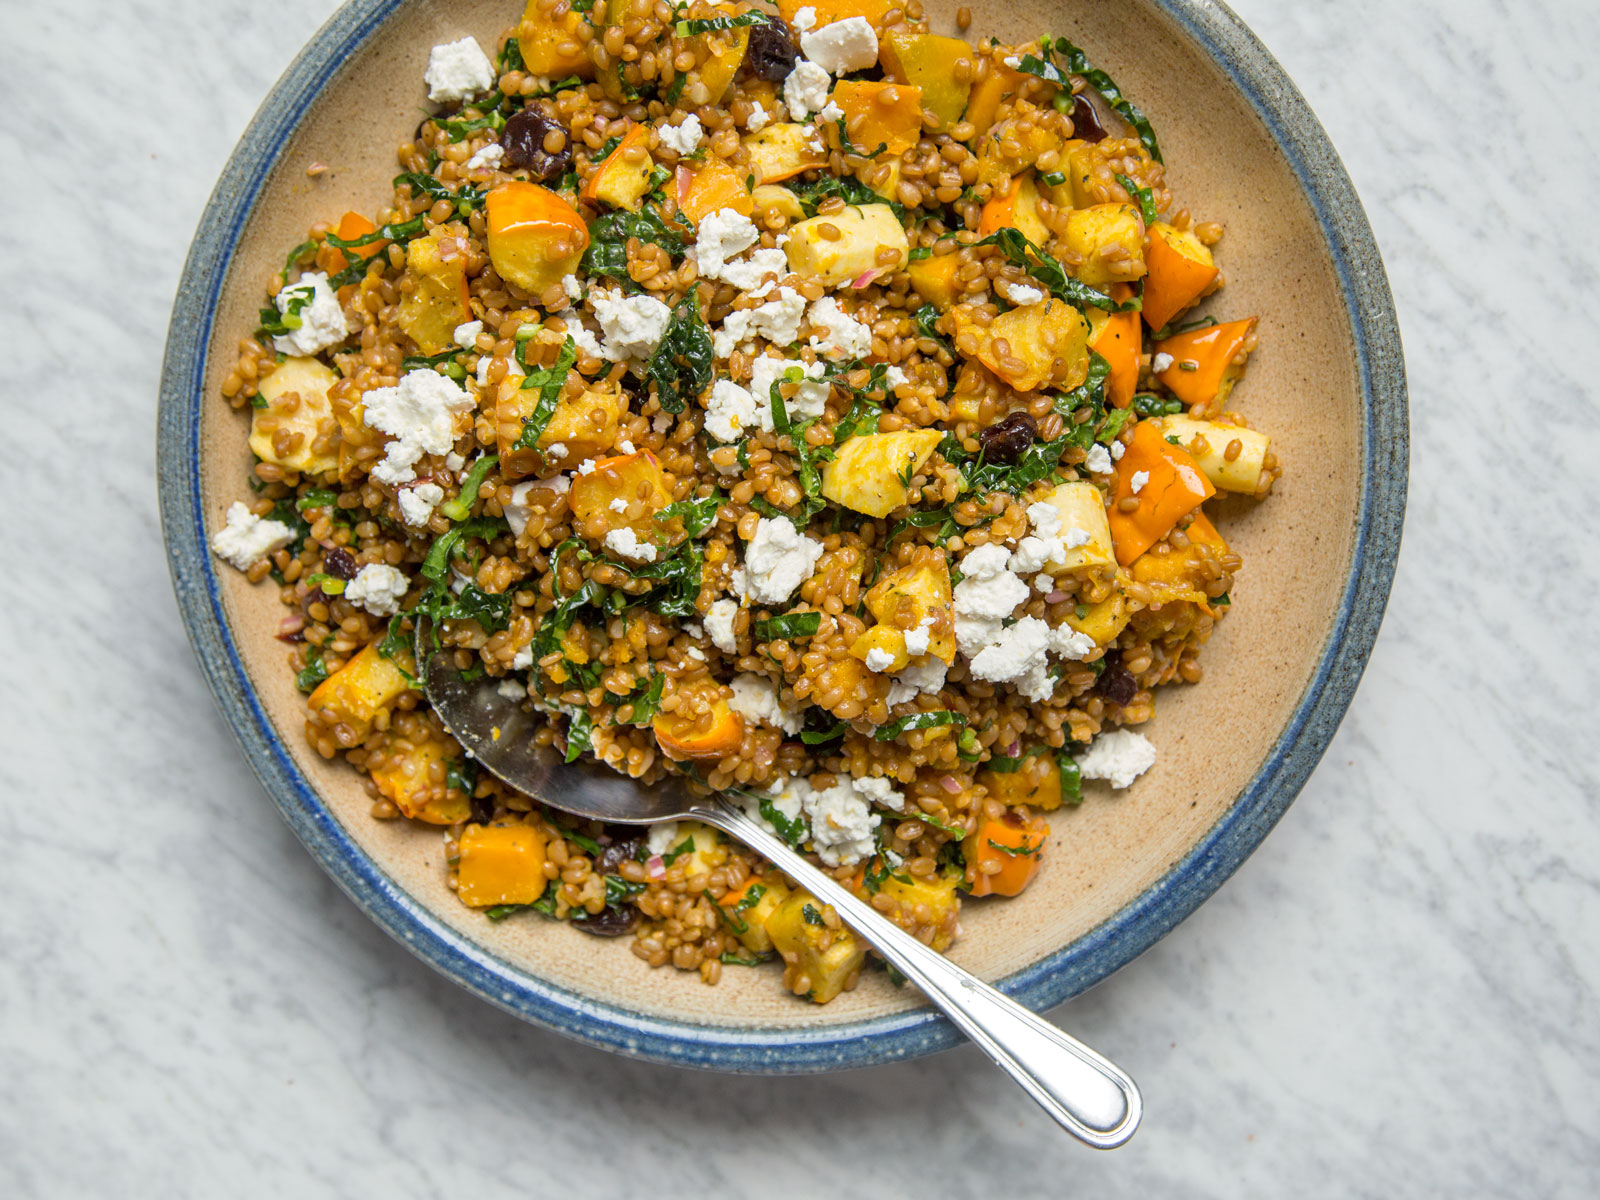 Wheat Berry and Squash Salad